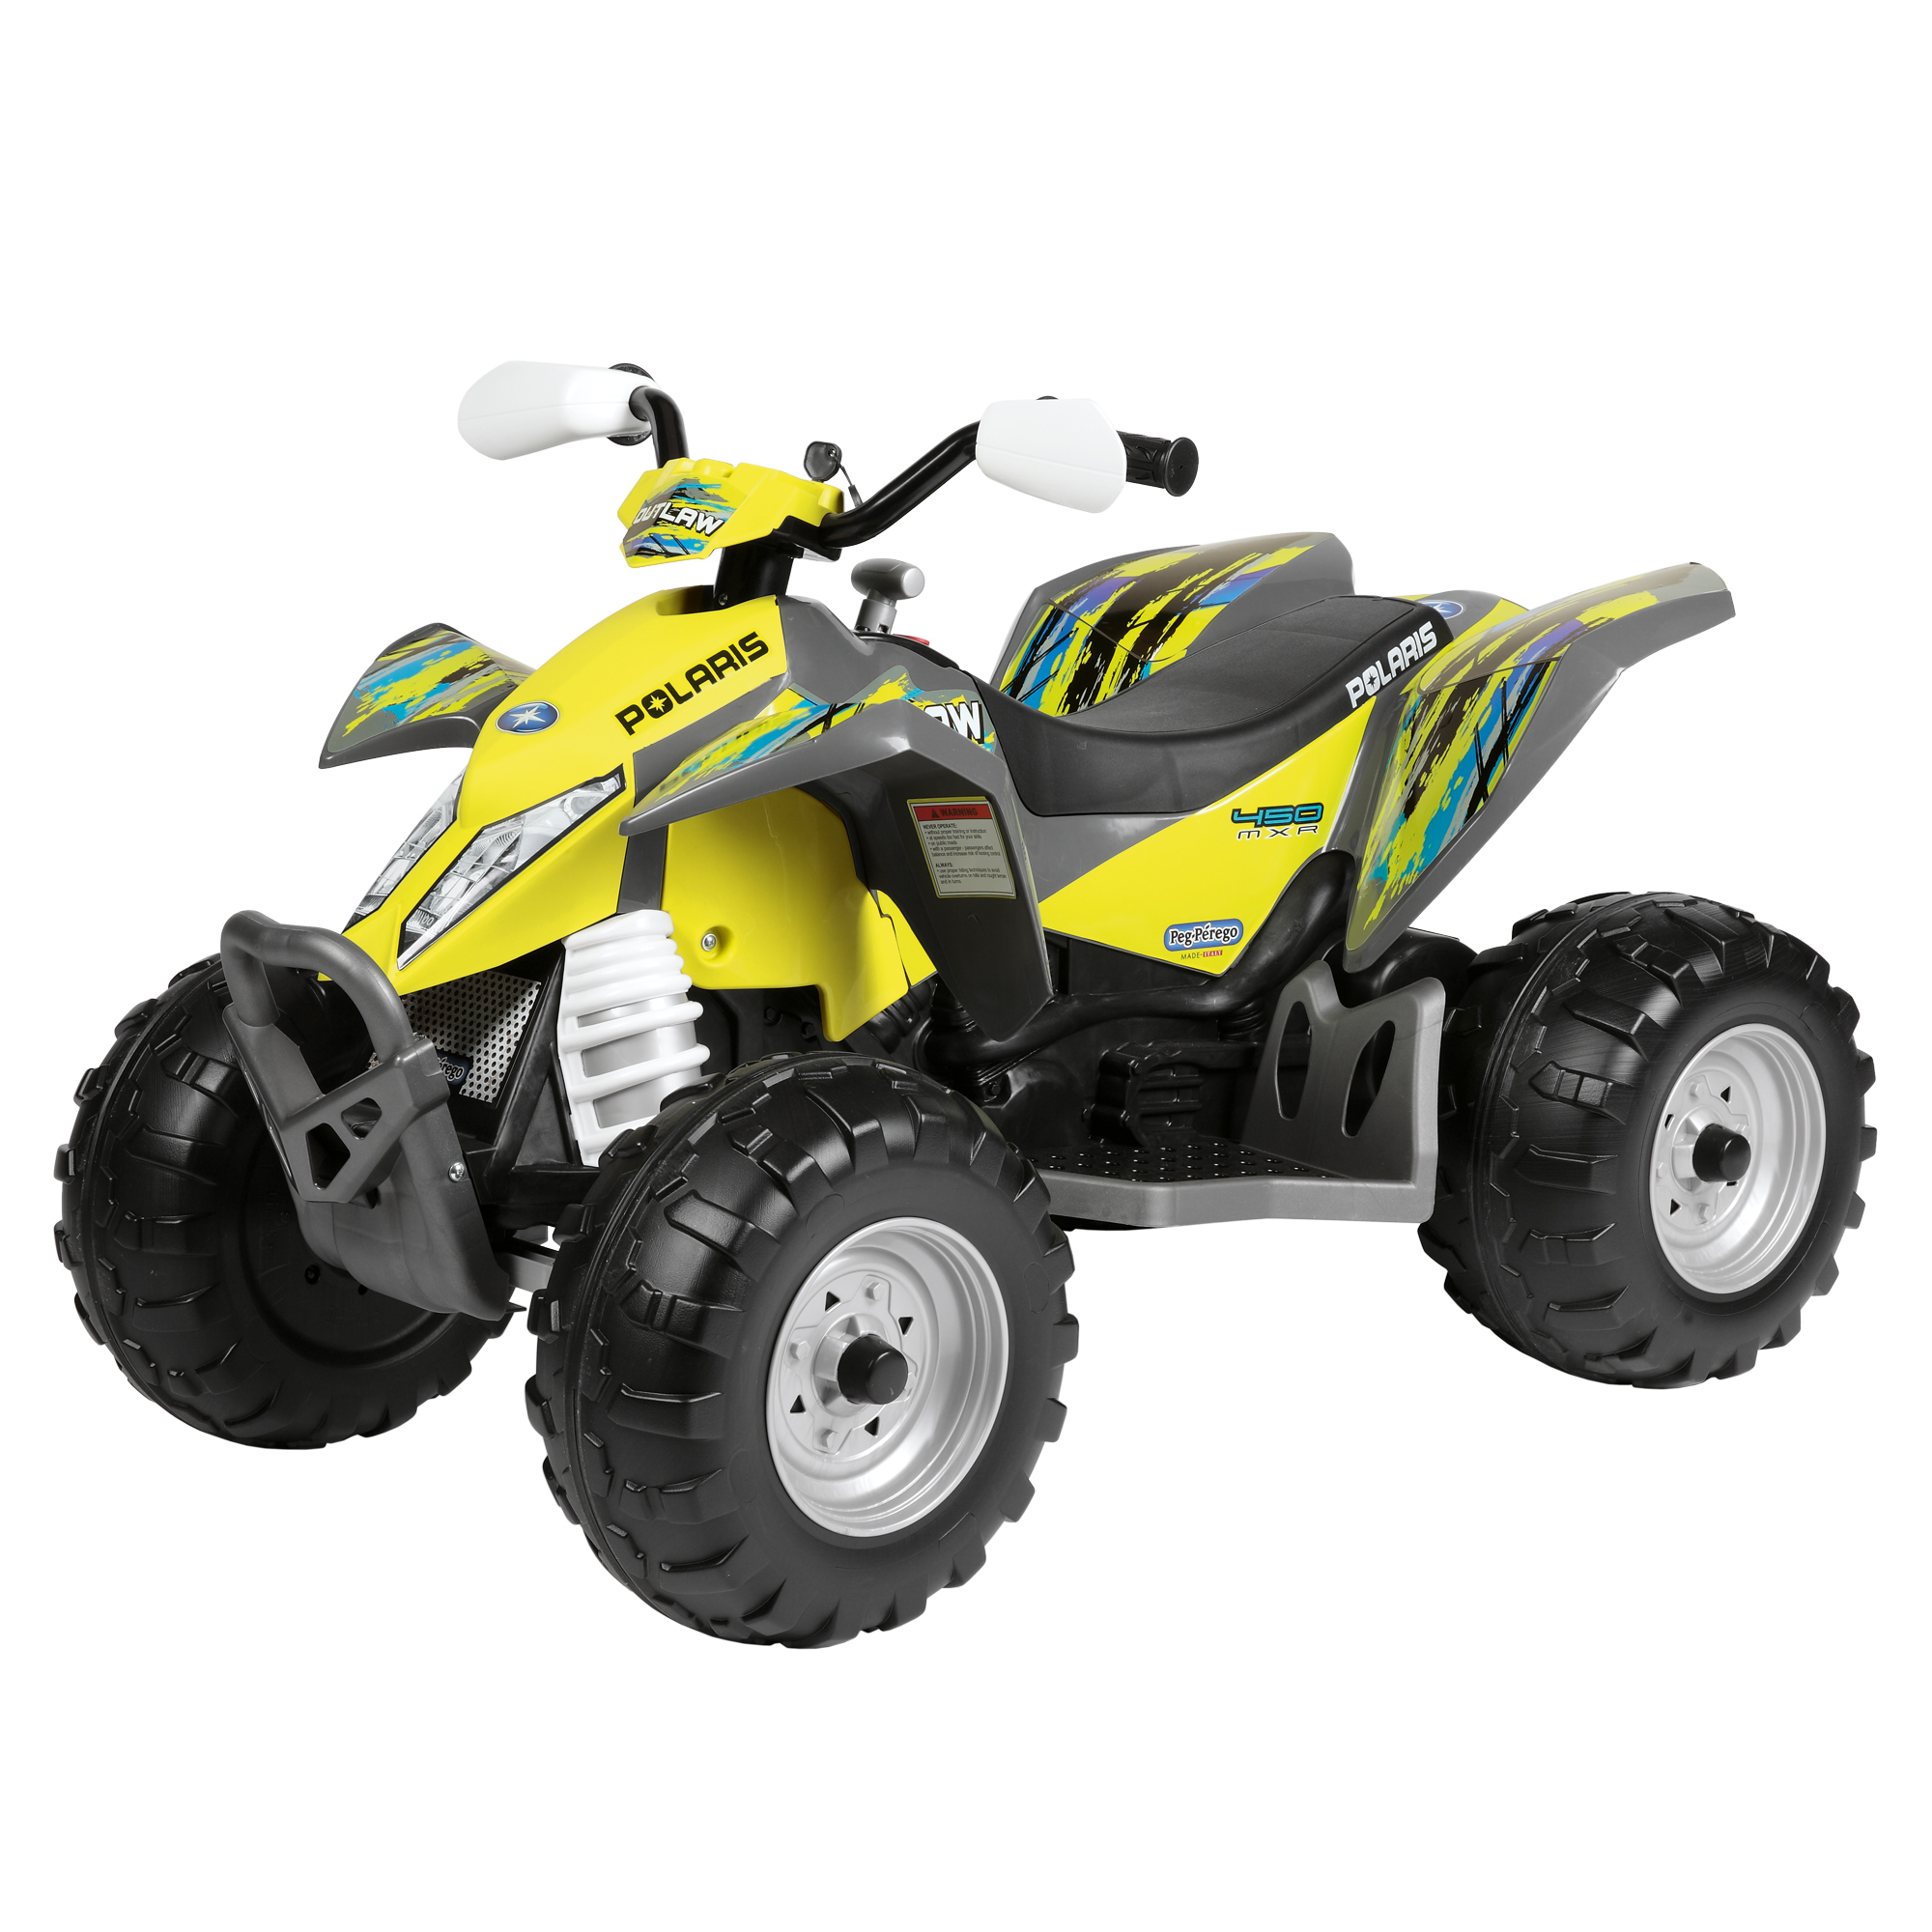 ATV Polaris Outlaw Citrus, Peg Perego